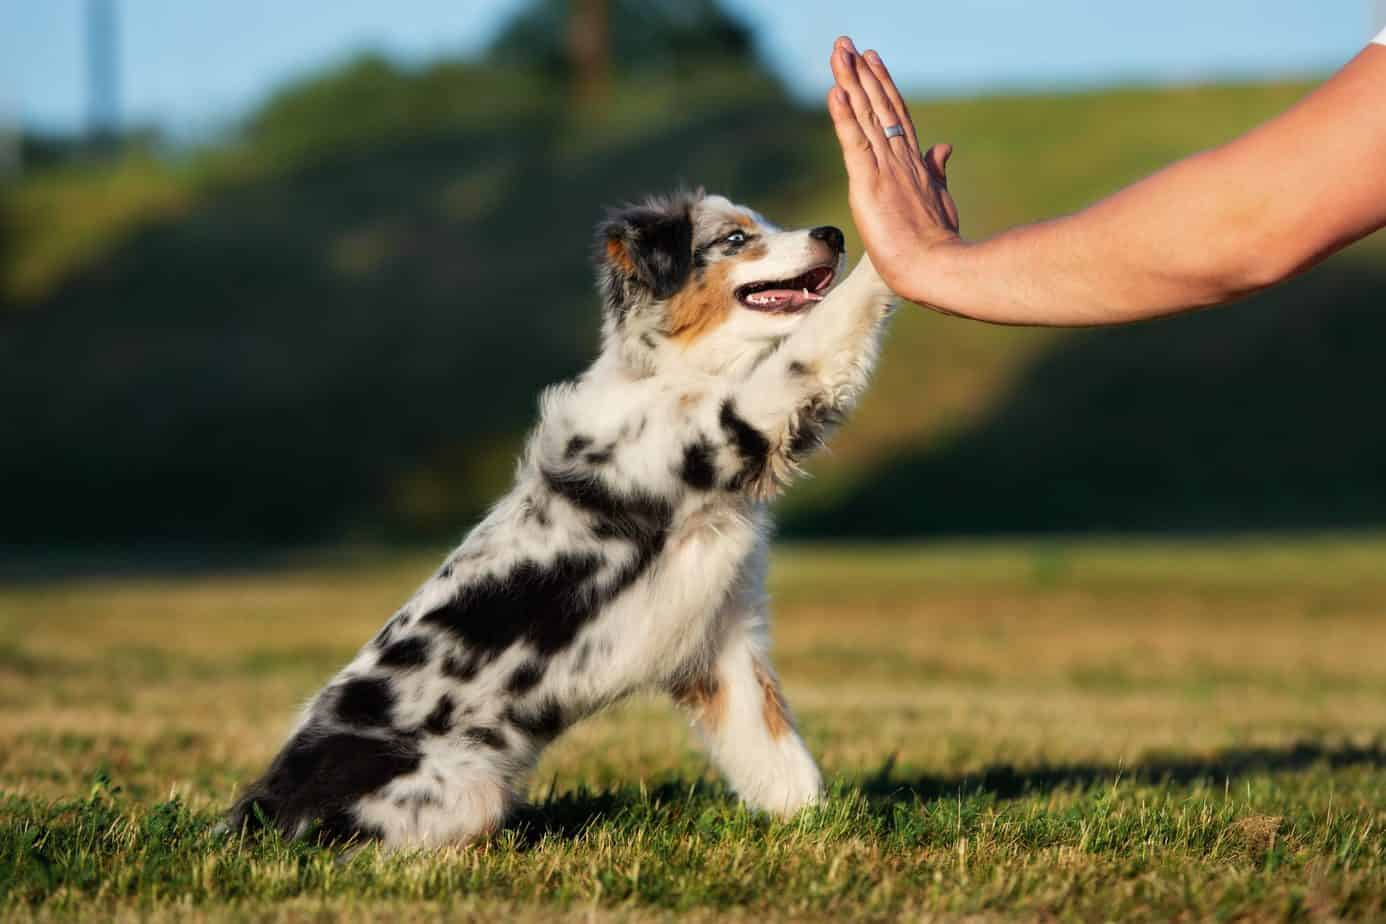 Australian shepherd puppy gives his owner a high five. CBD is considered to be extremely safe for humans, and there is no reason why it should not also be for dogs.